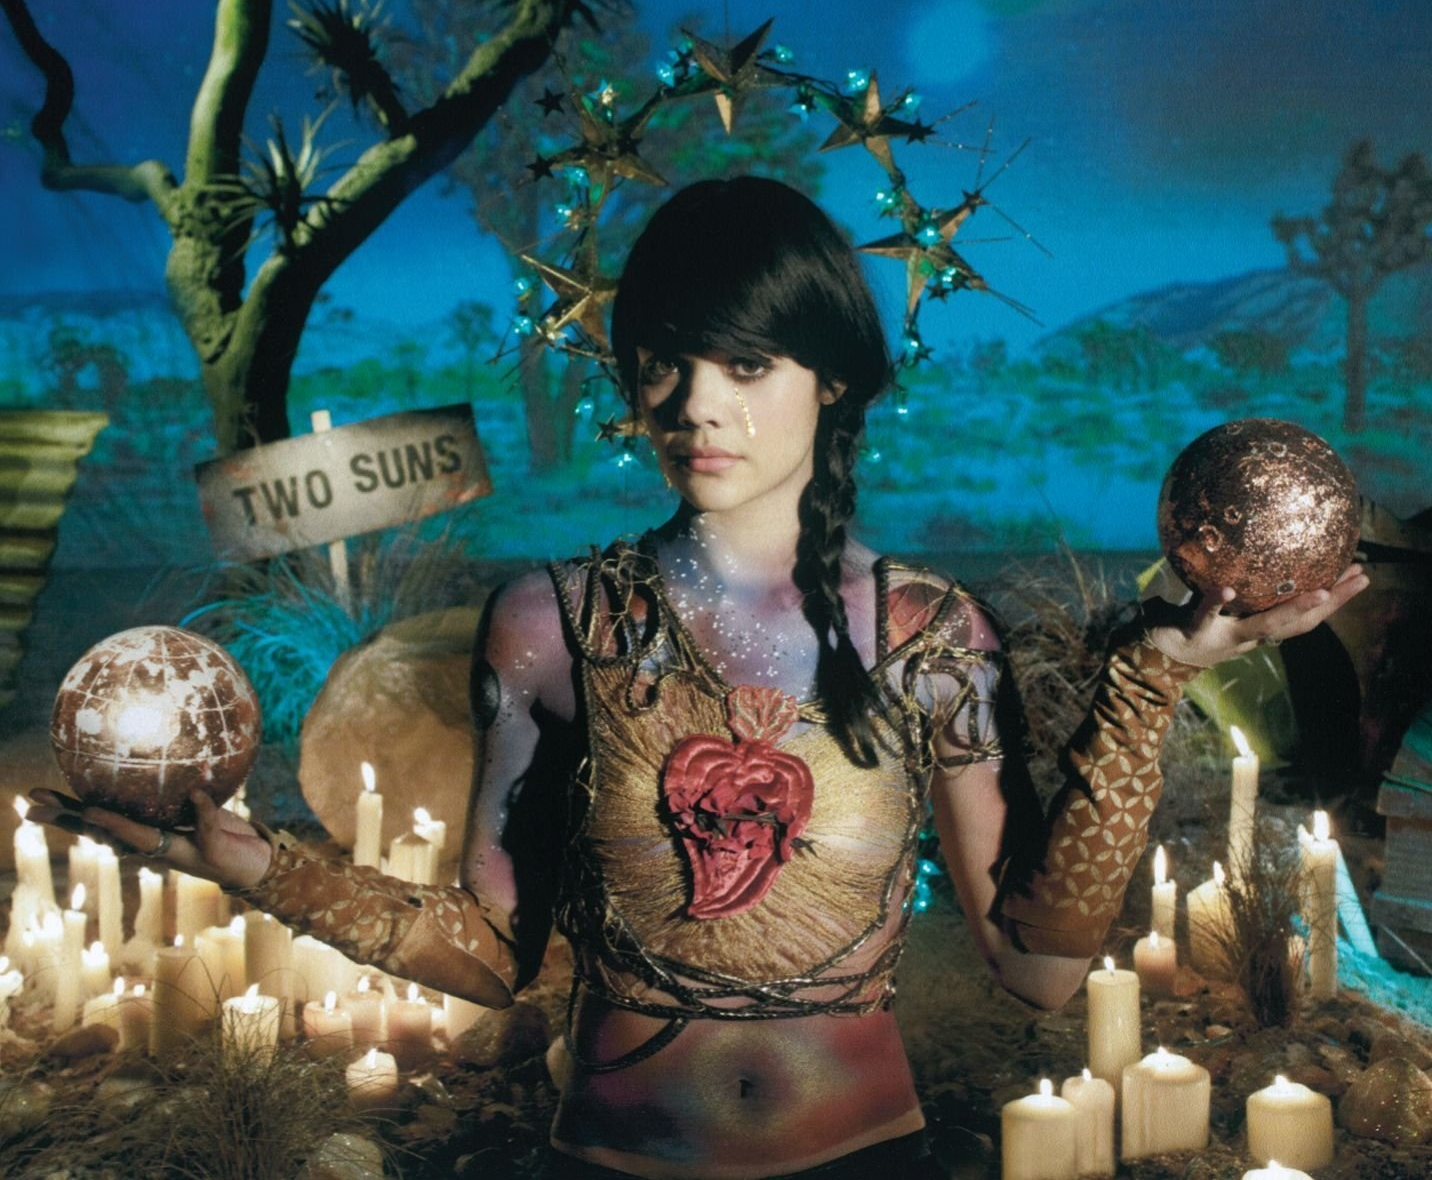 How does Two Suns end up?Bat For Lashes is joined by Scott Walker